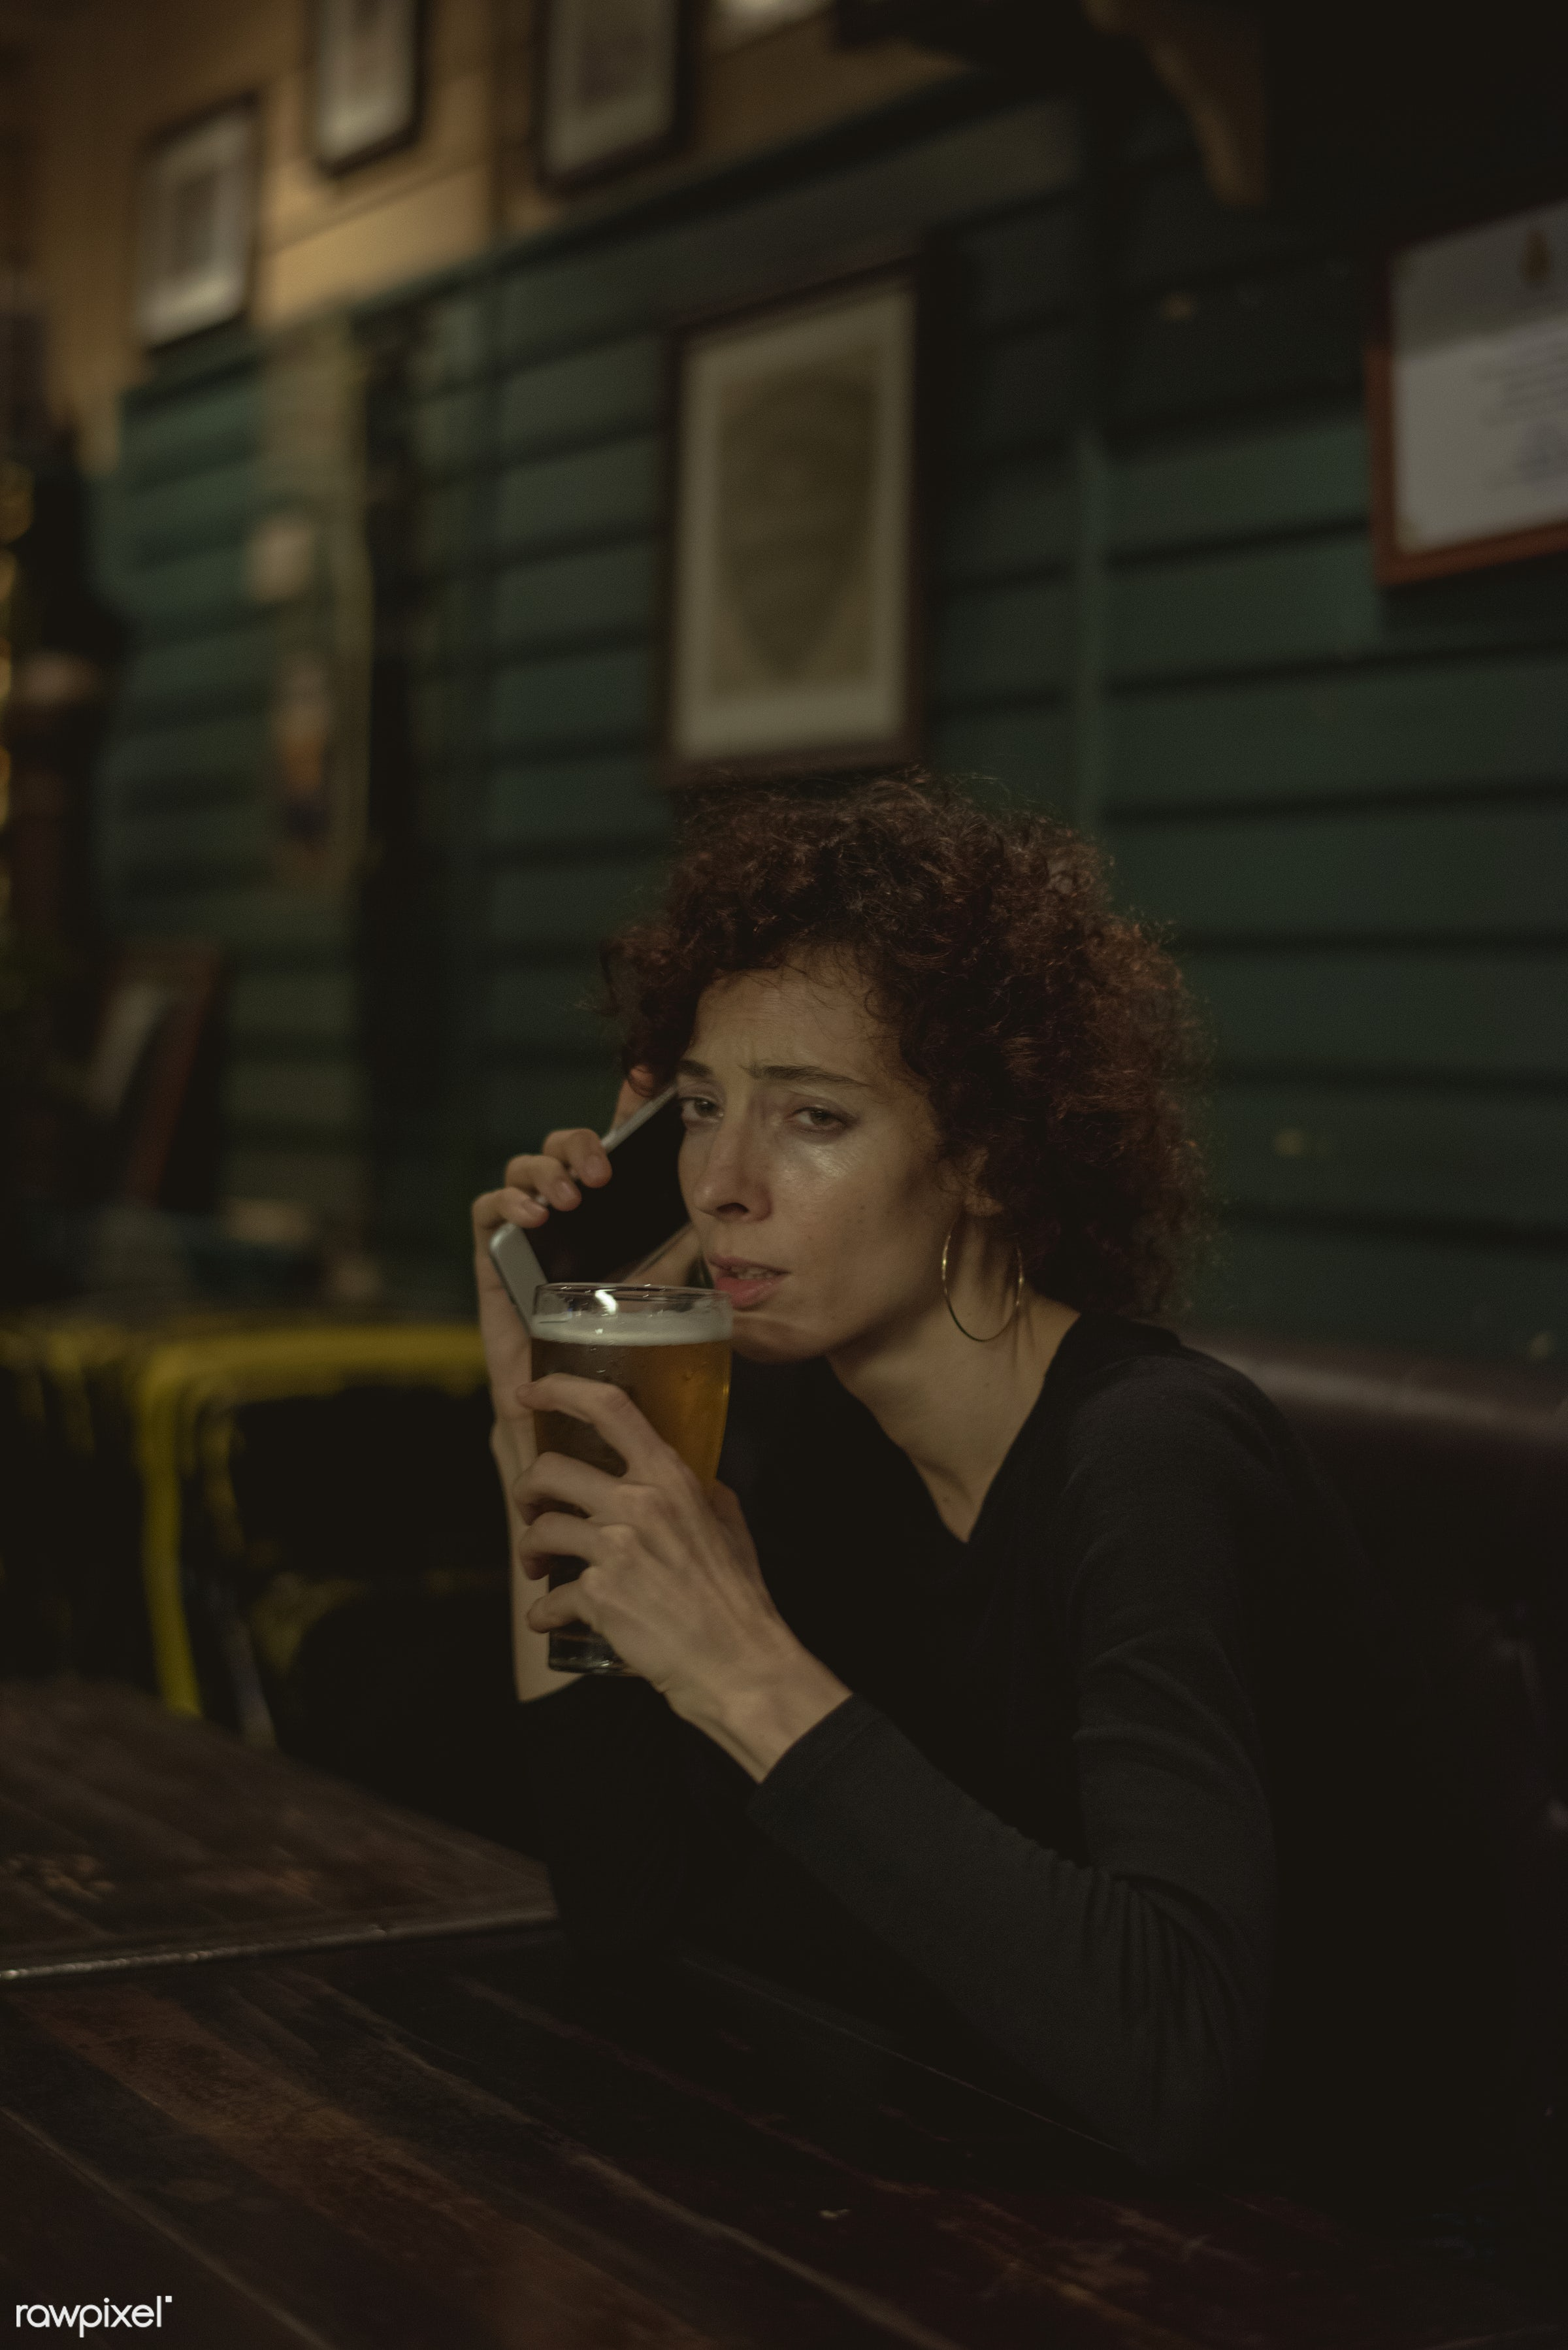 Woman having a beer at a bar - alcohol, alone, bar, beer, beverage, caucasian, communication, connection, curly hair, dark,...